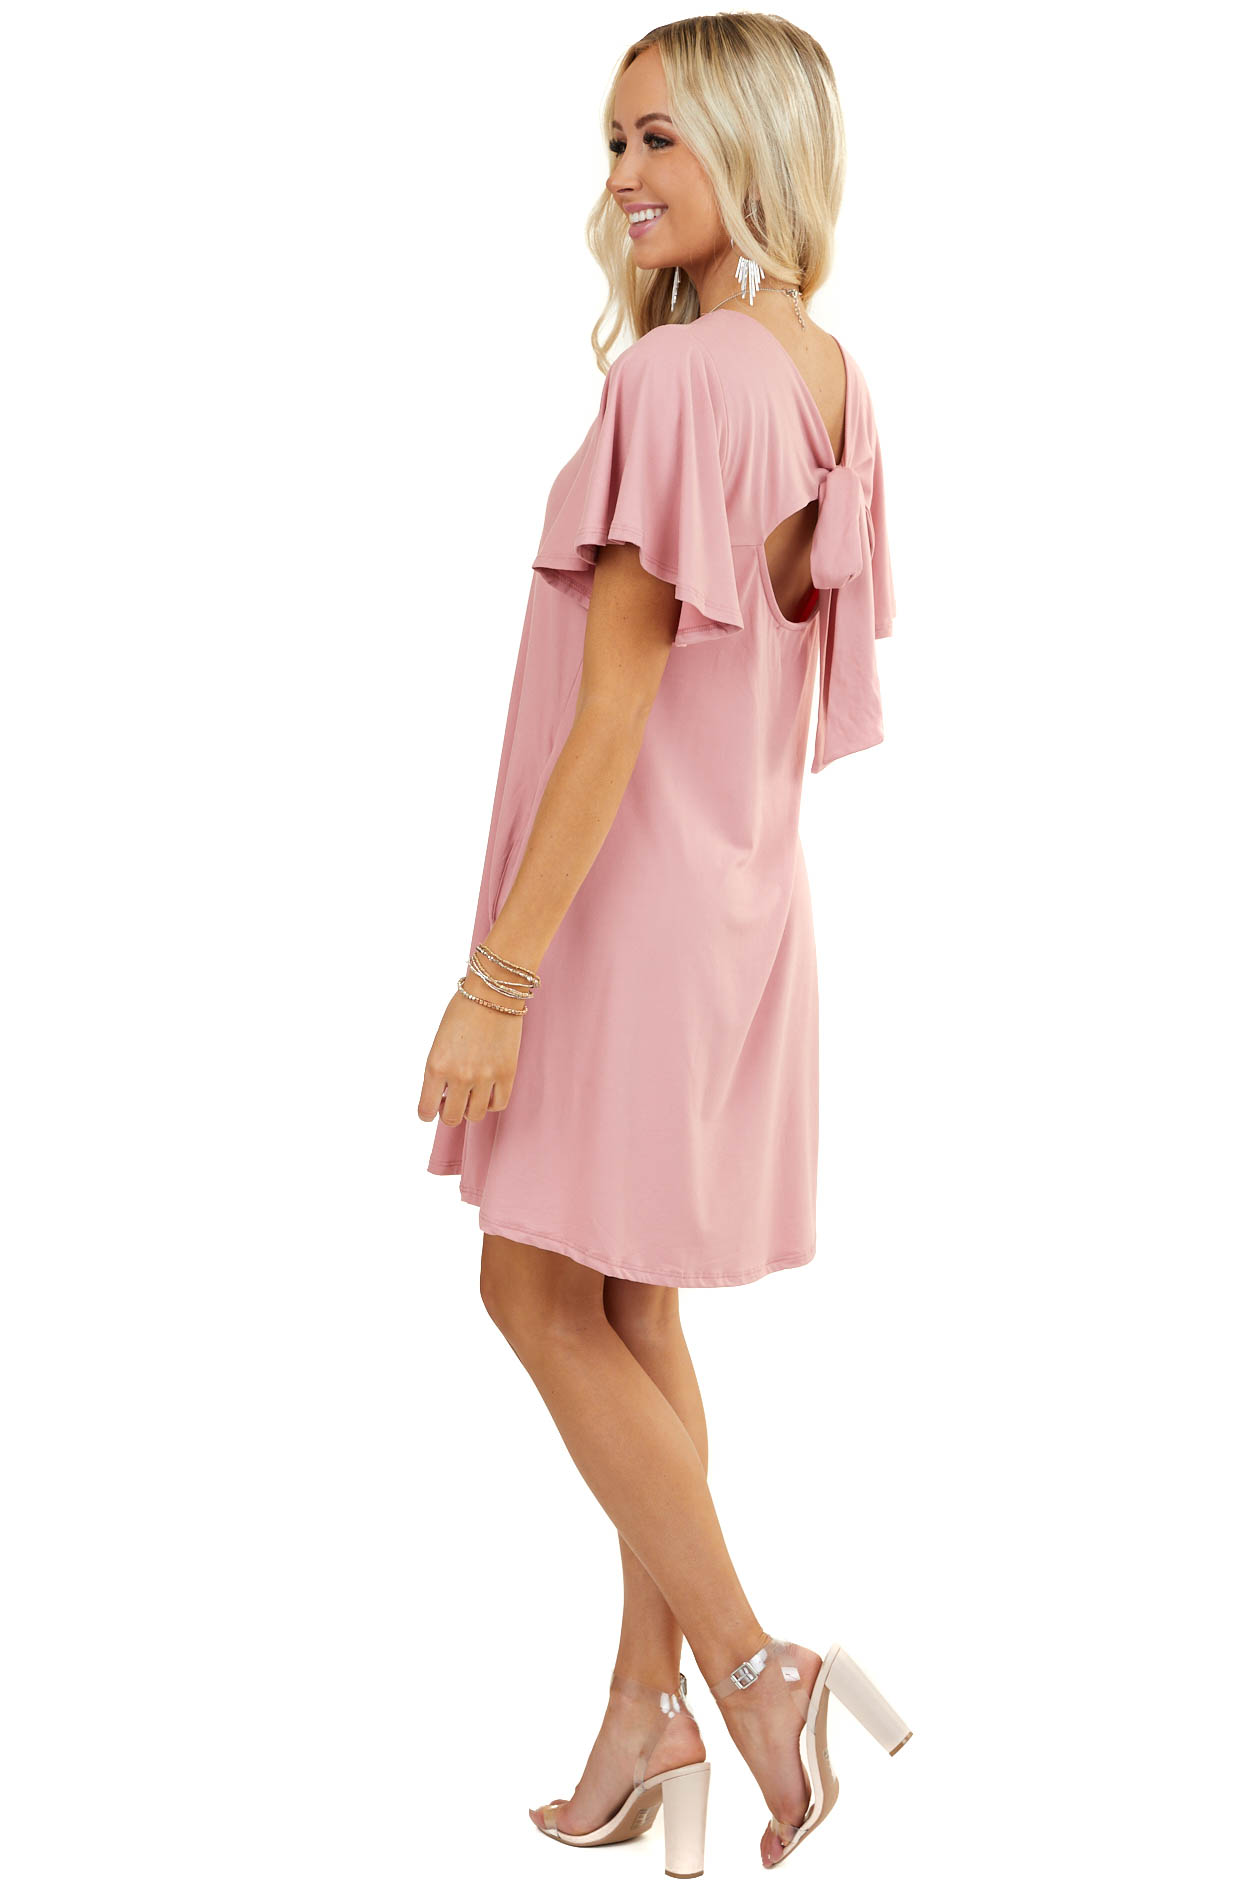 Blush Keyhole Back Mini Dress with Tie Detail and Pockets